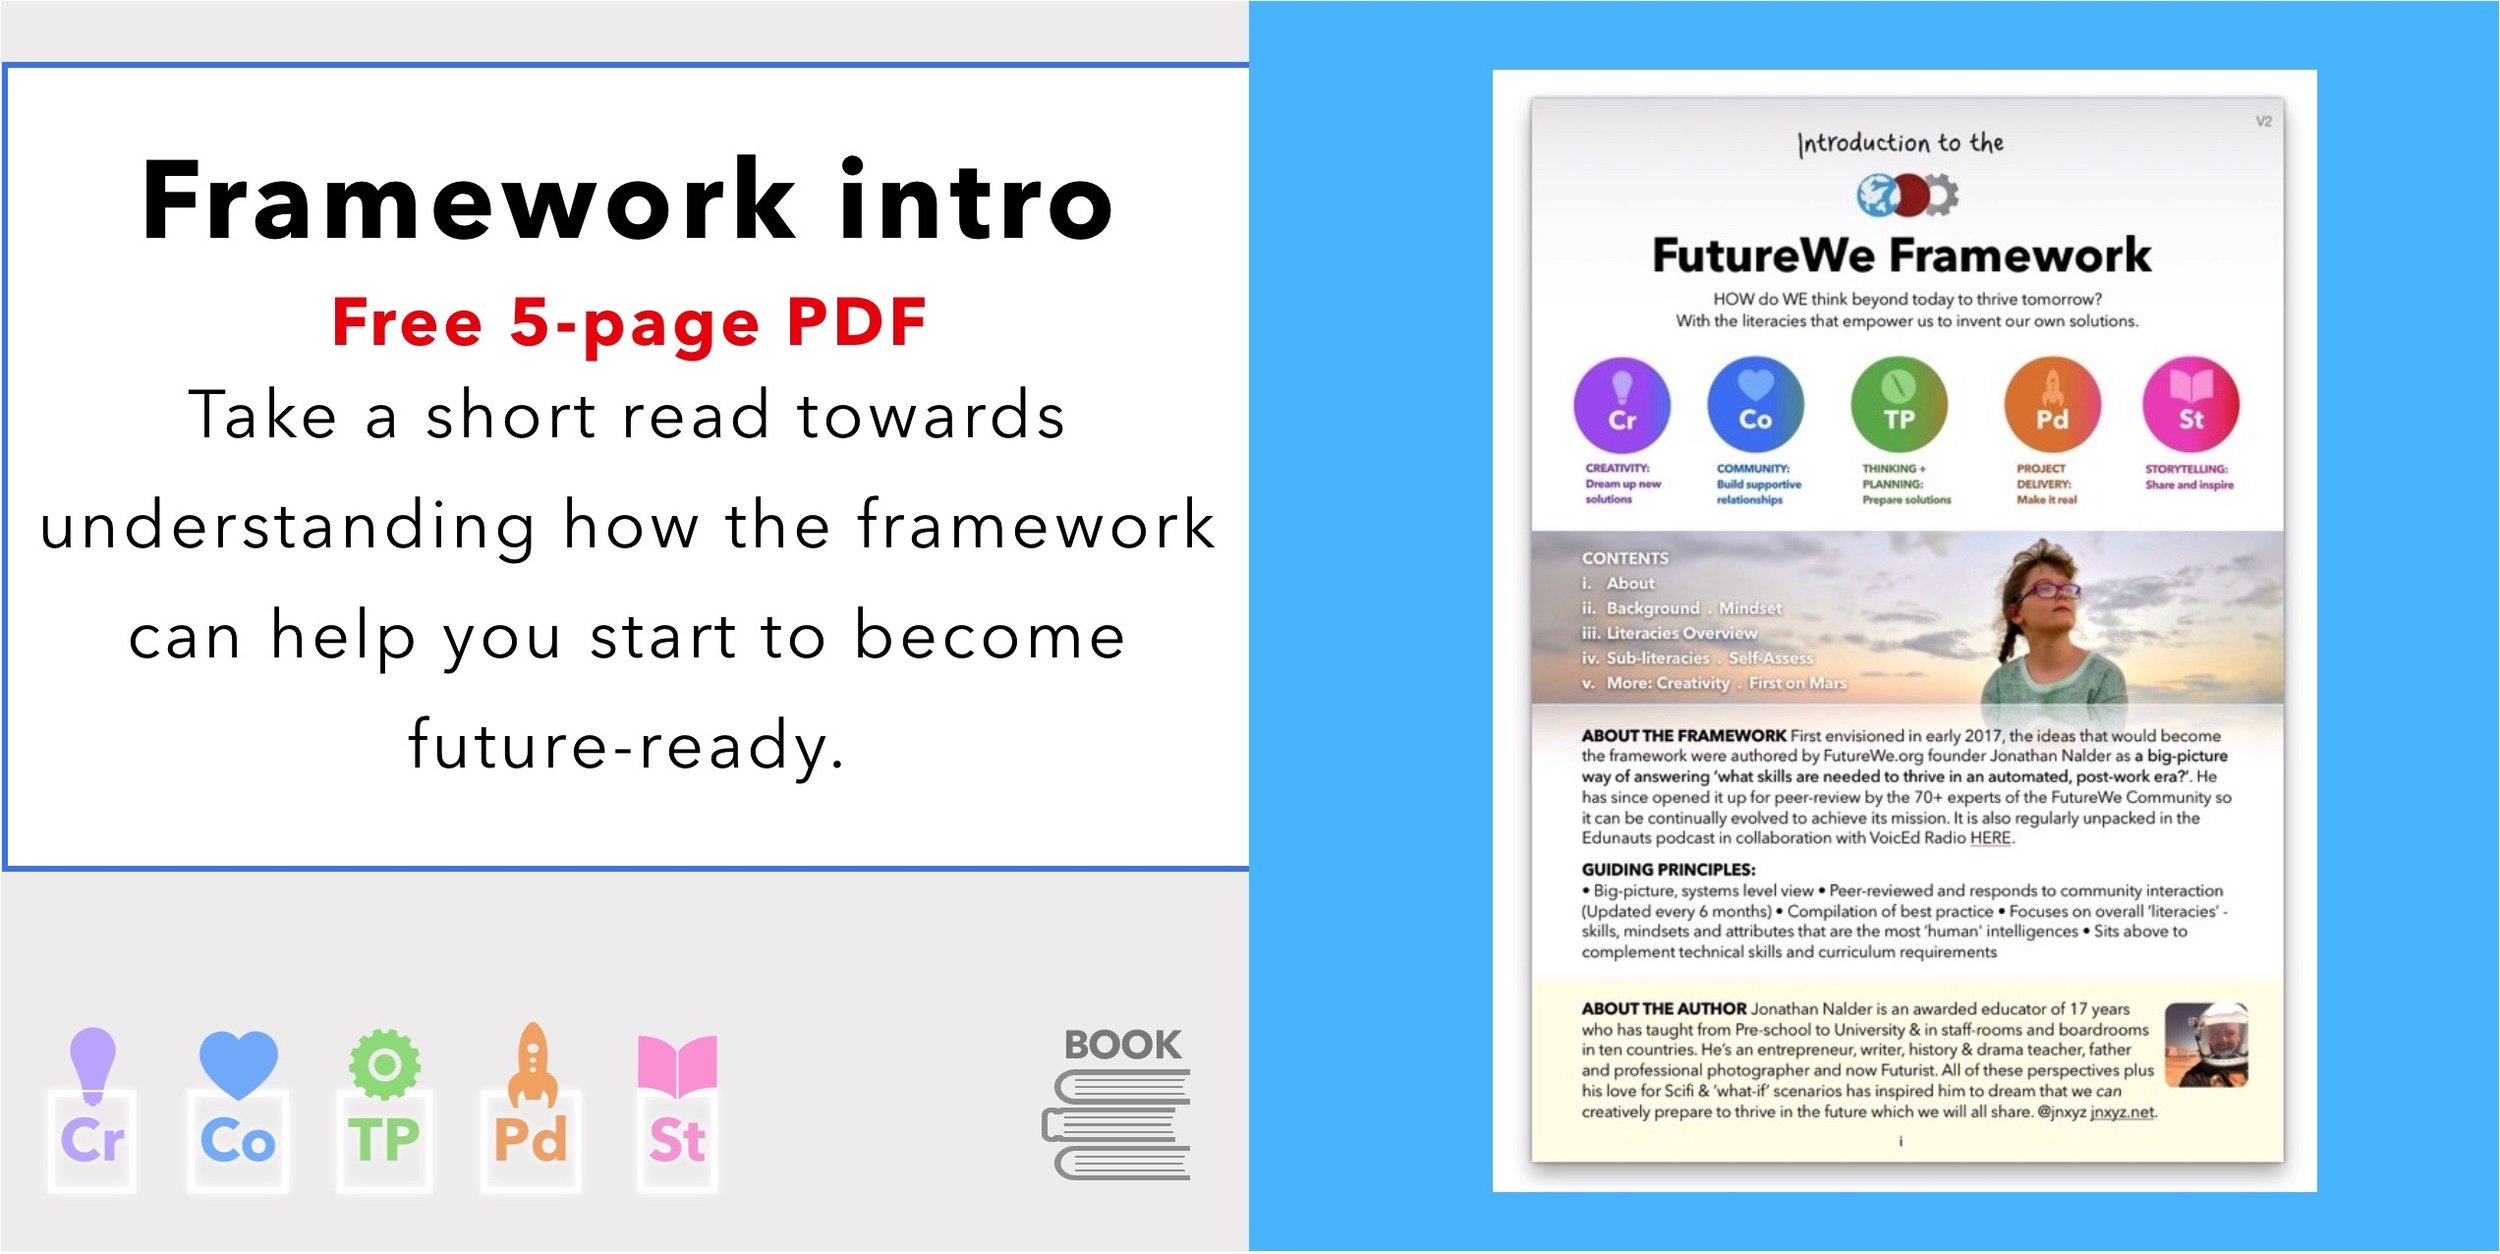 Framework intro book